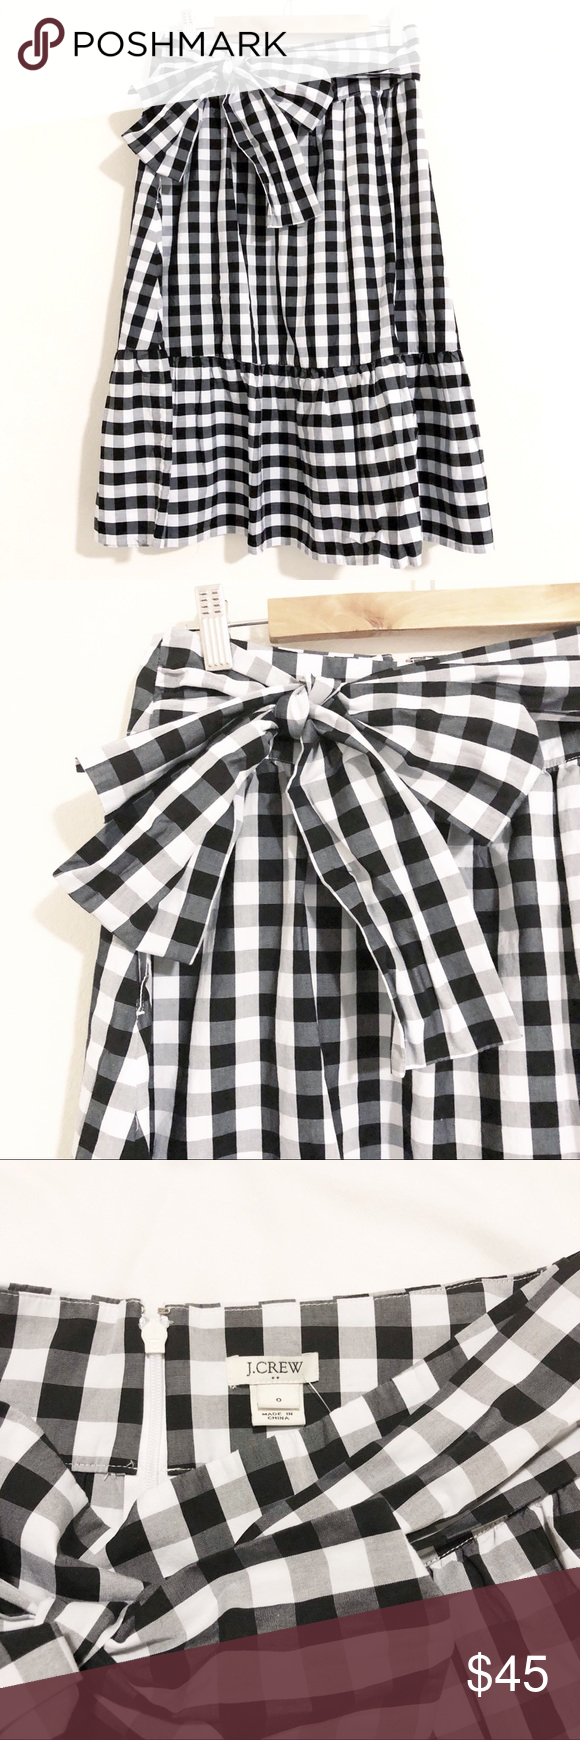 32a2c28e9b2f JCREW Gingham Big Bow Midi Skirt JCREW Factory Big Bow Midi Skirt Size 0 in  Black and White Gingham Adorable skirt with pockets Sits above waist and  falls ...